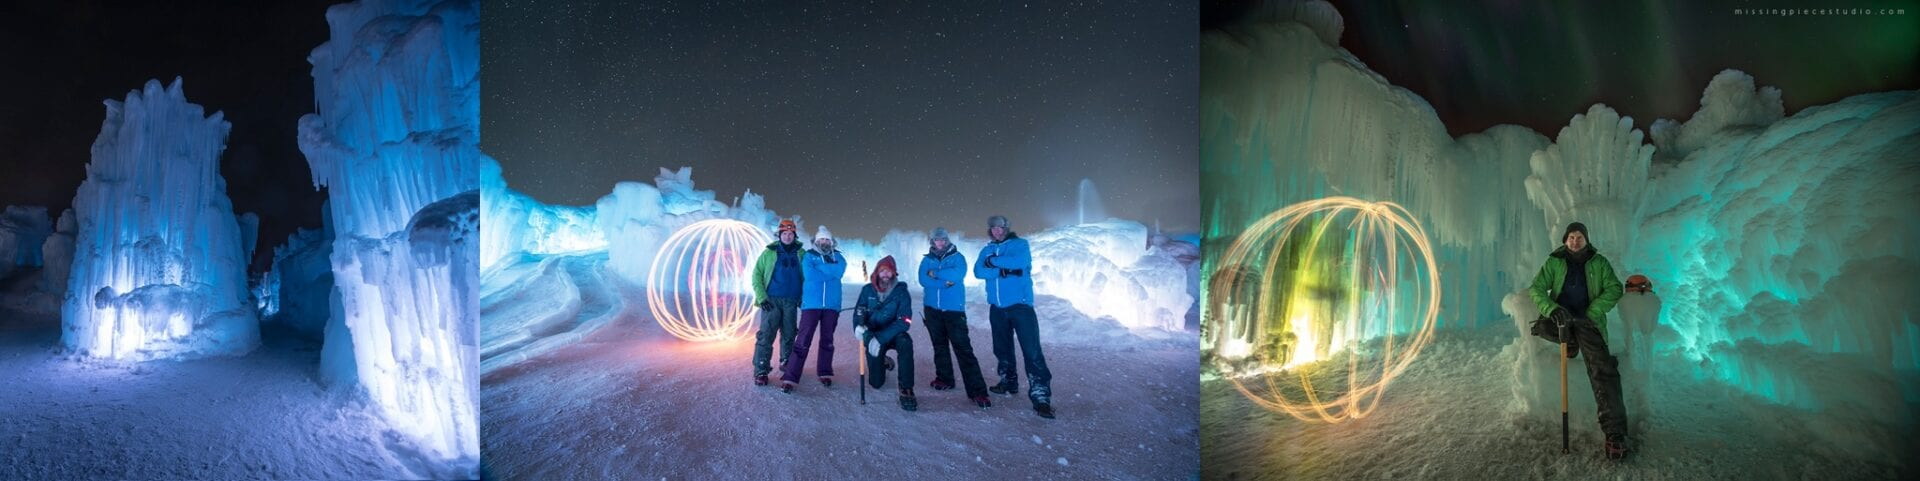 The temporary Edmonton's attraction Ice Castles at Hawrelak Park